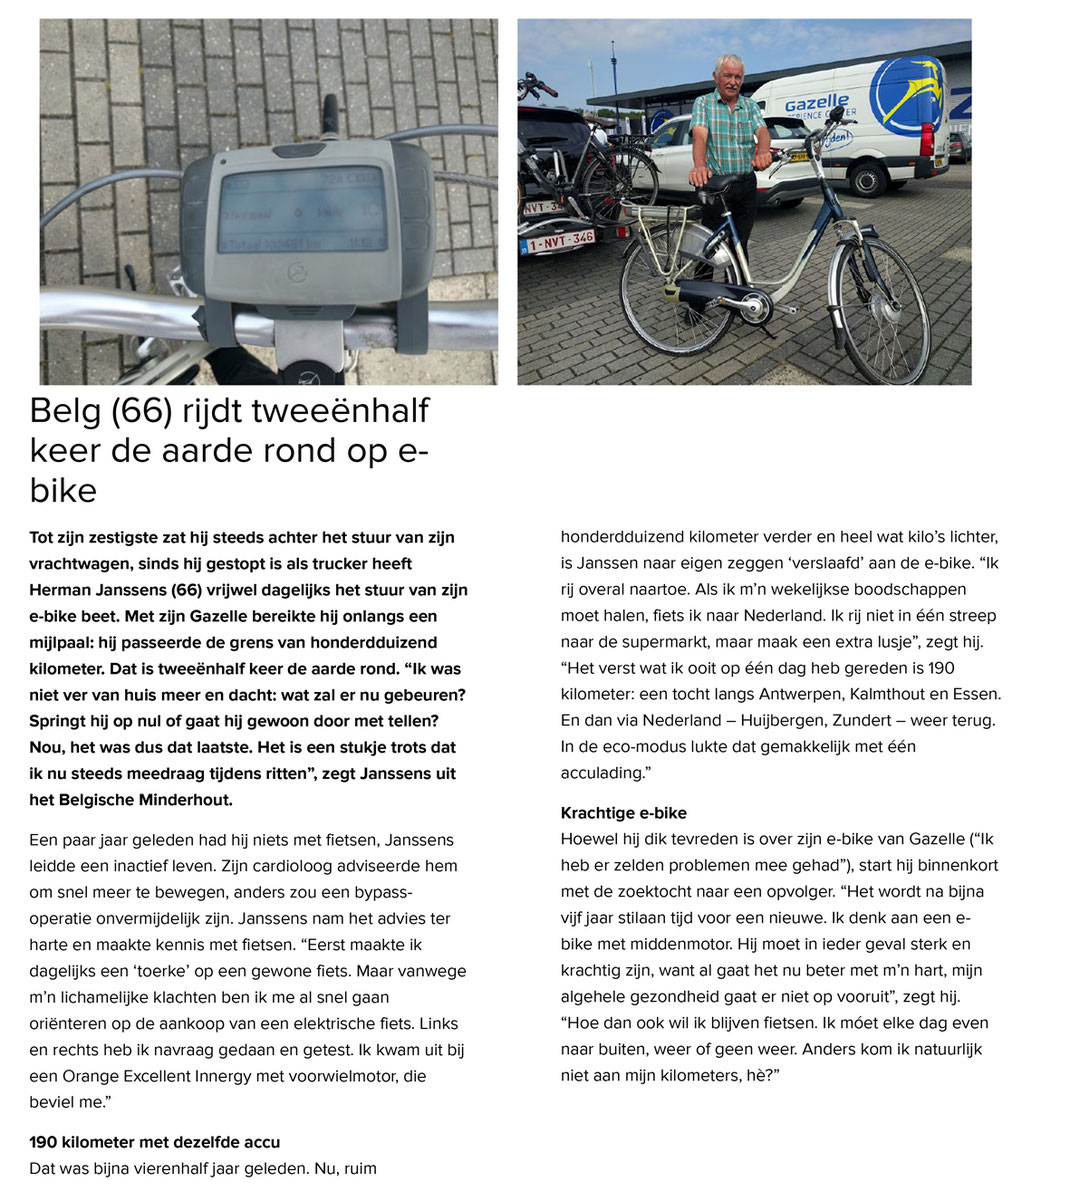 review from Gazelle.nl